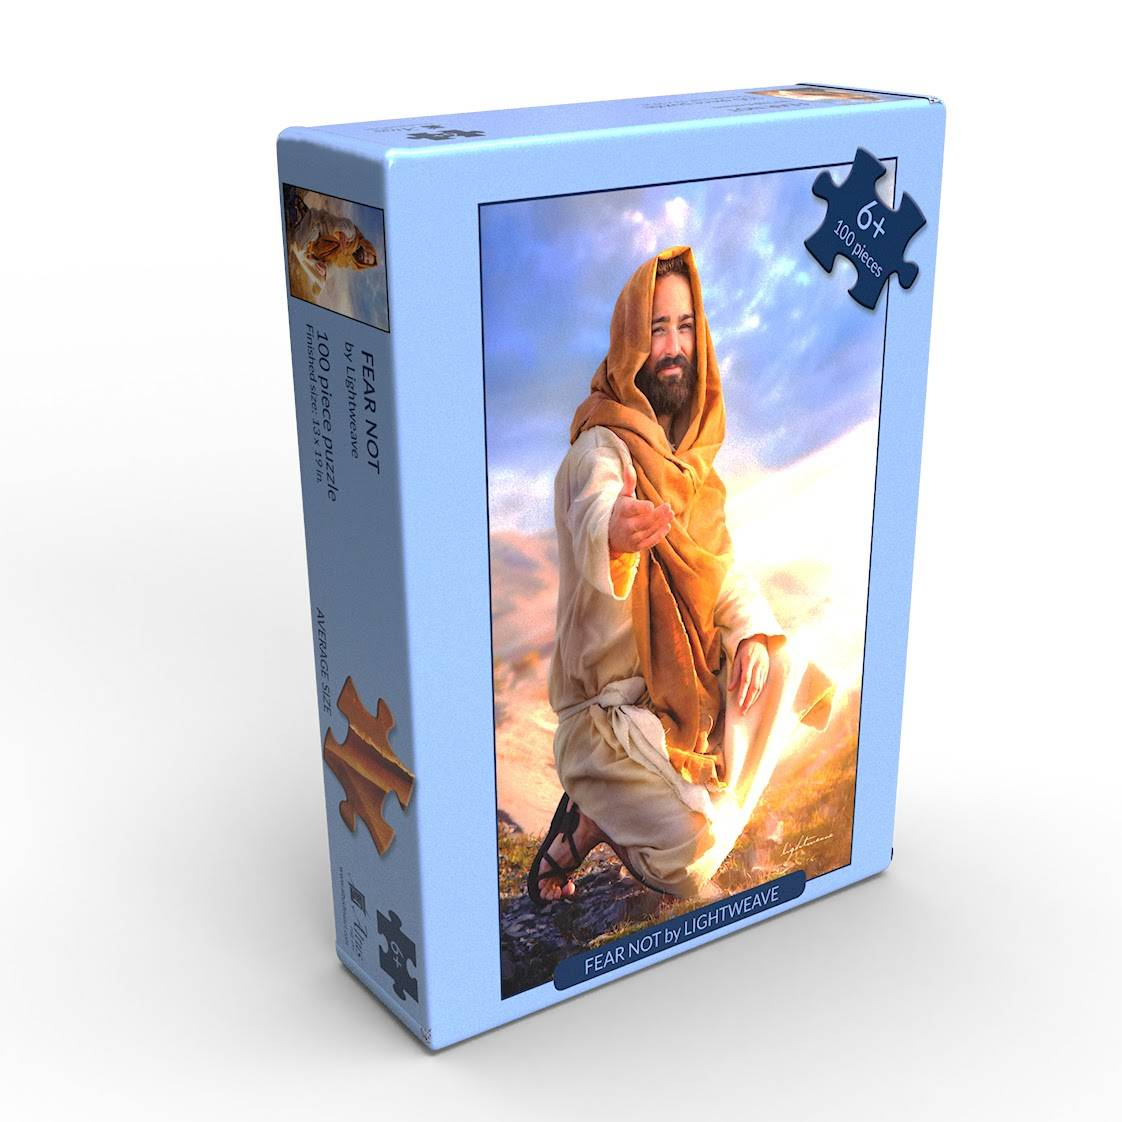 LDS art puzzle featuring a comforting painting of Christ by Kelsy and Jesse Lightweave